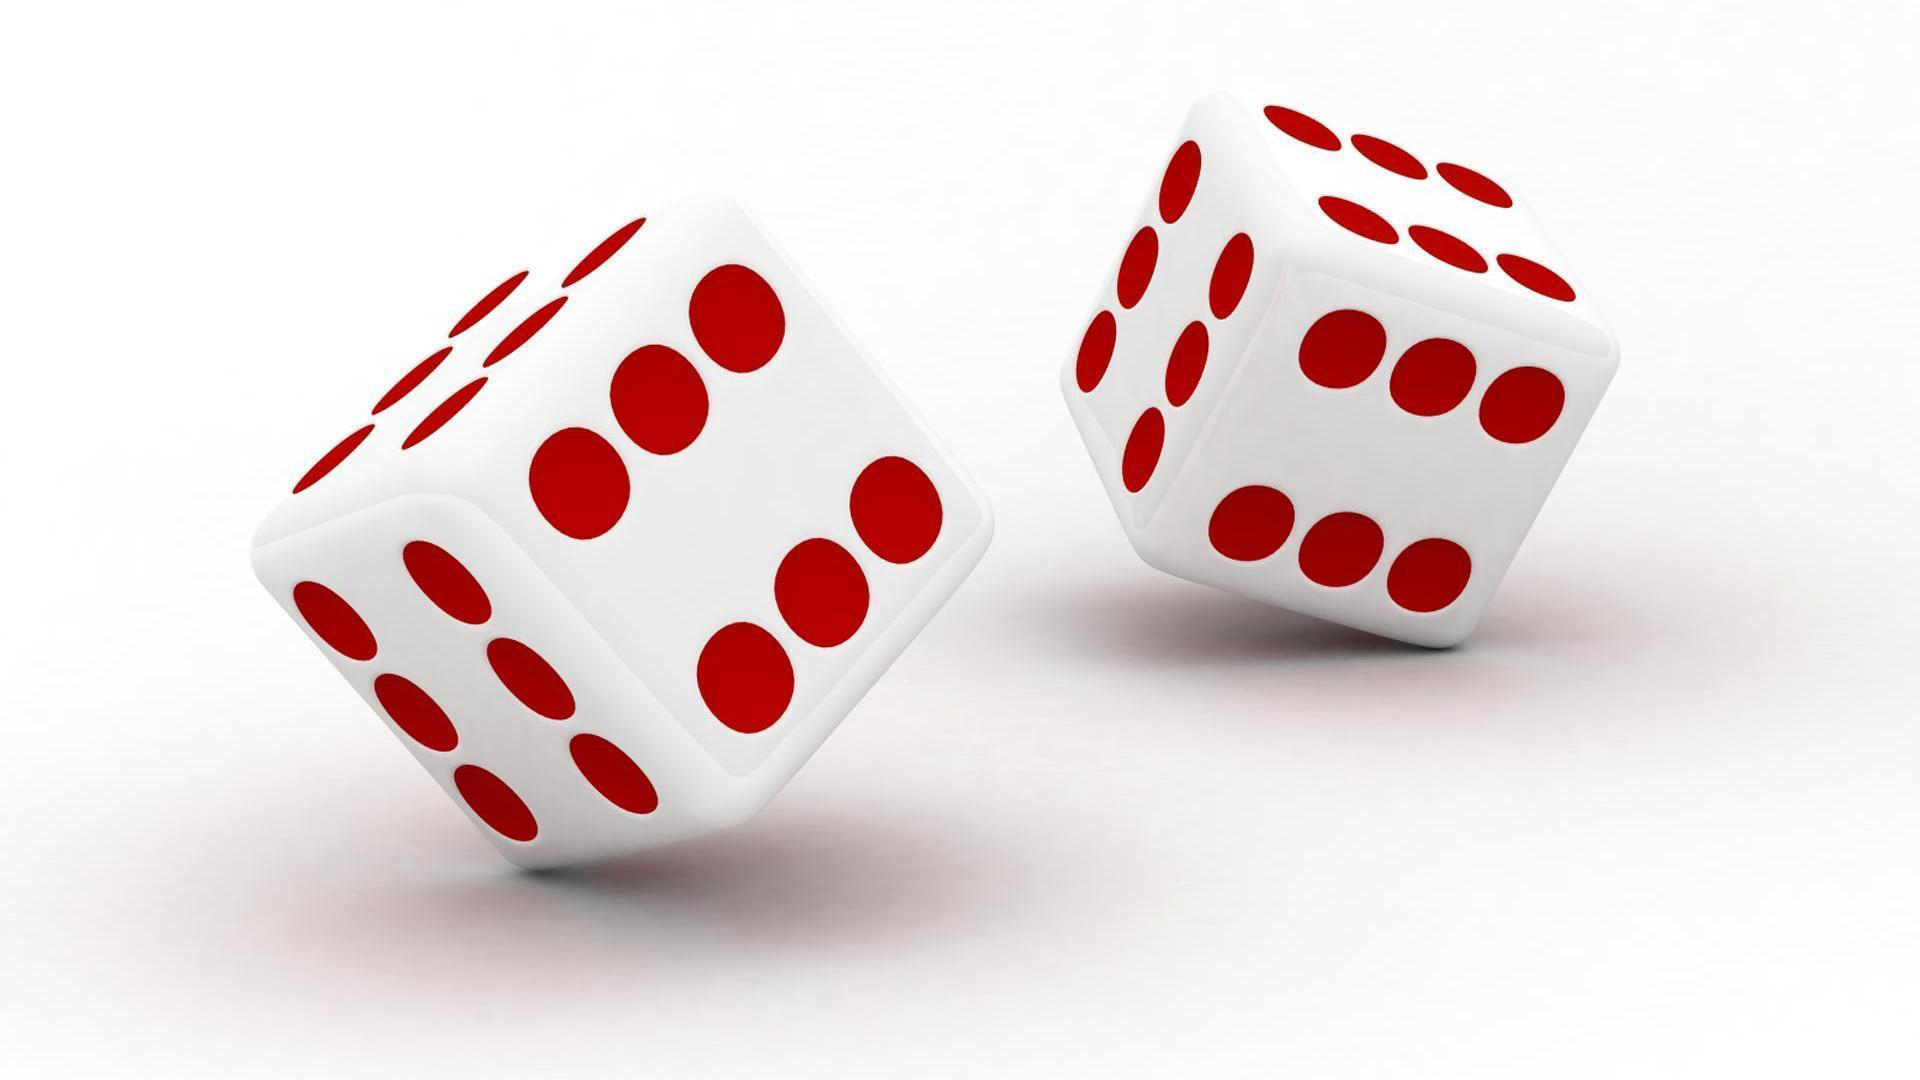 two-white-dice-with-red